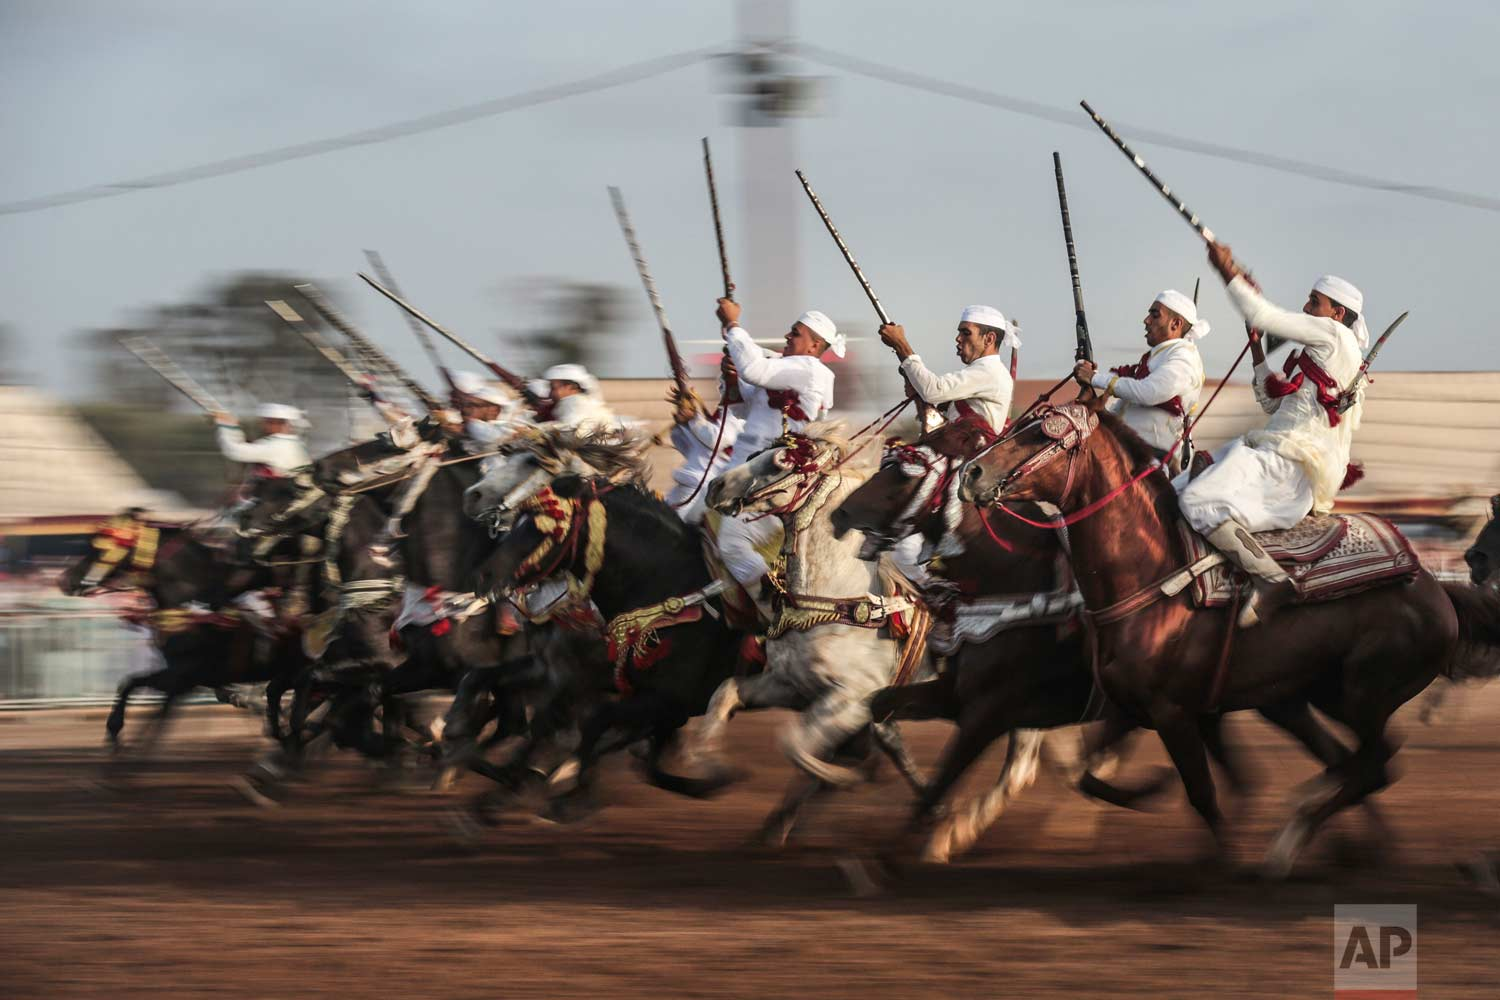 In this Thursday, Aug. 17, 2017 photo, a troupe charges and holds their rifles before firing, during Tabourida, a traditional horse riding show also known as Fantasia, in Mansouria, near Casablanca, Morocco. (AP Photo/Mosa'ab Elshamy)